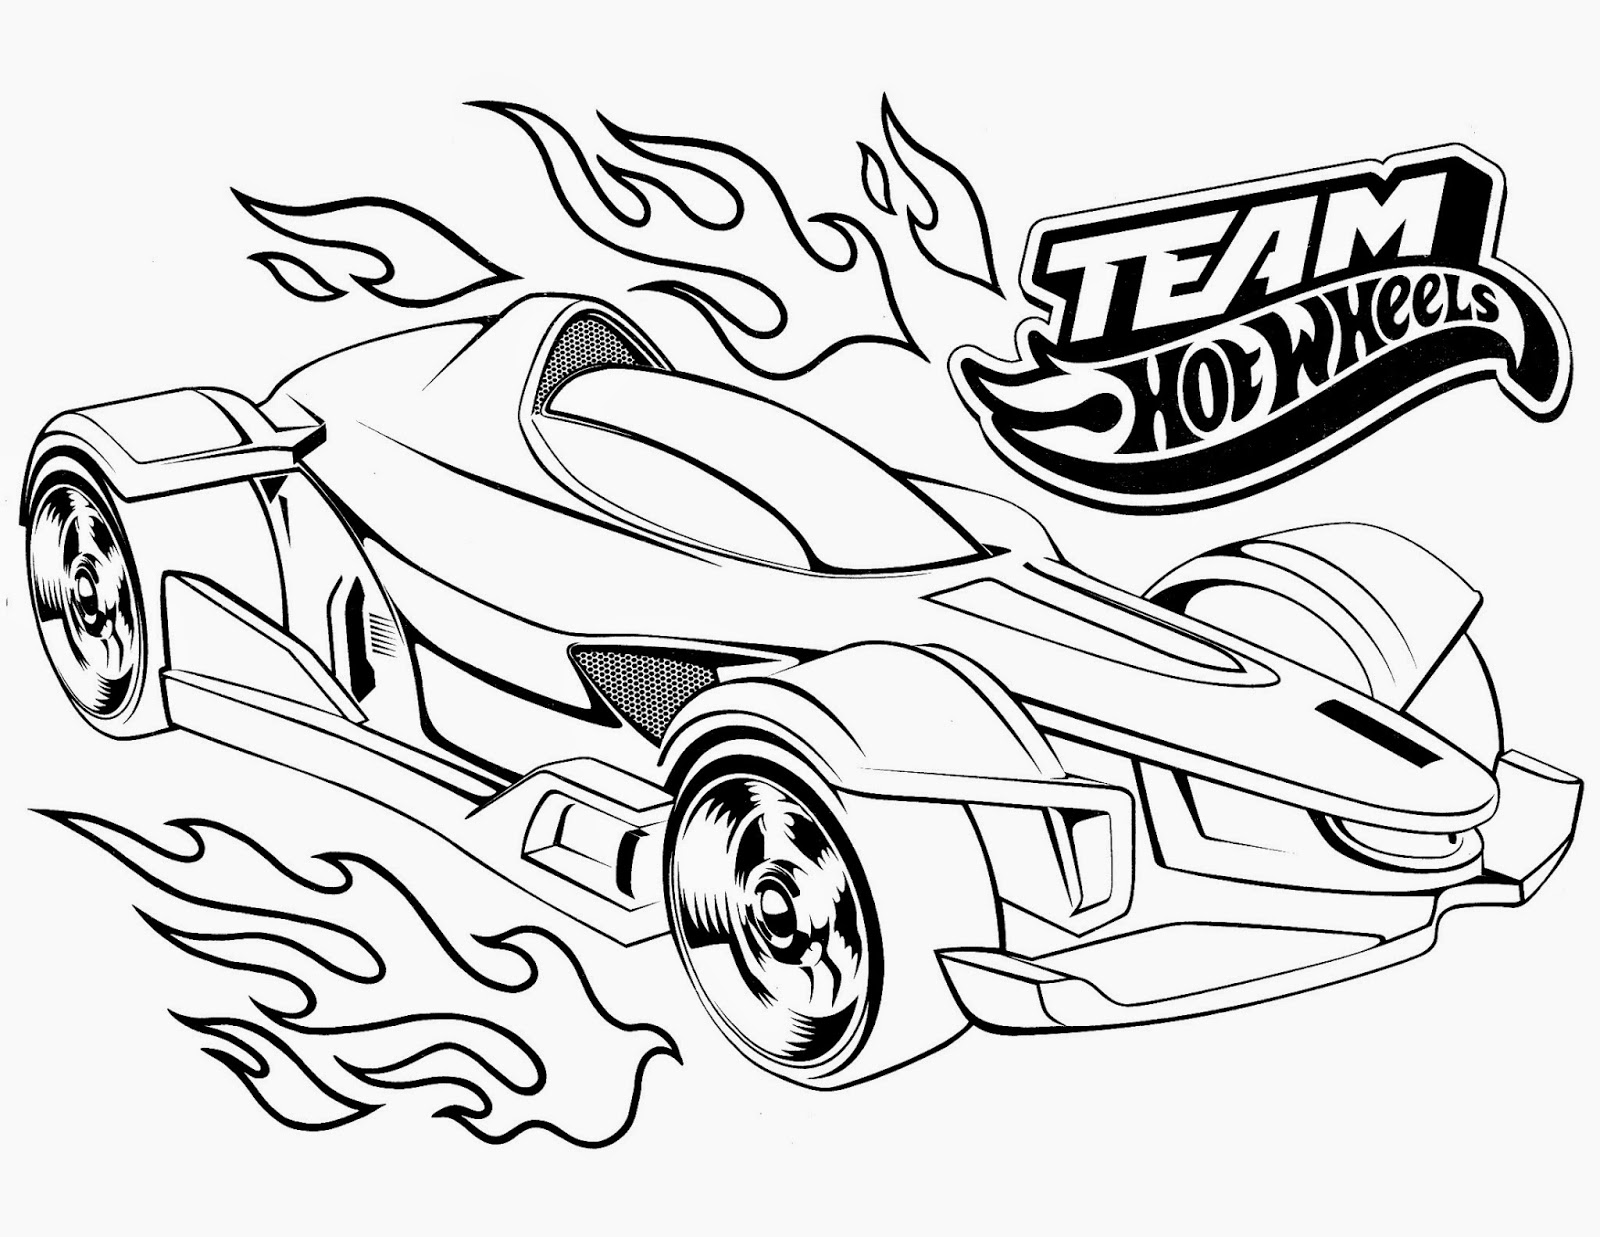 hot wheels cars pictures to color hot wheels cars pictures to color hot wheels color to pictures cars